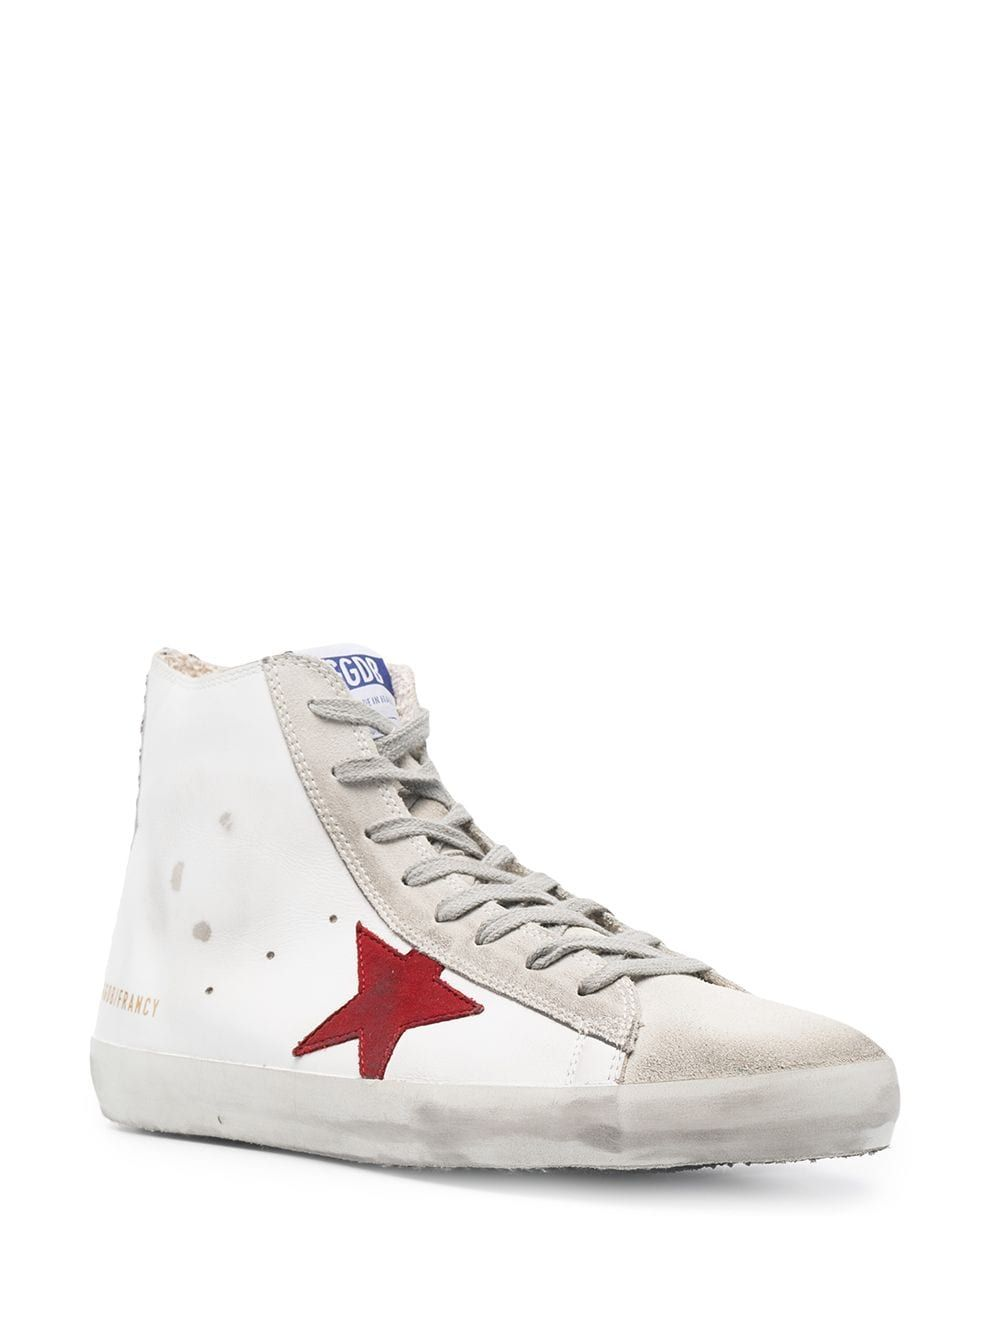 GOLDEN GOOSE Leathers GOLDEN GOOSE MEN'S WHITE LEATHER HI TOP SNEAKERS